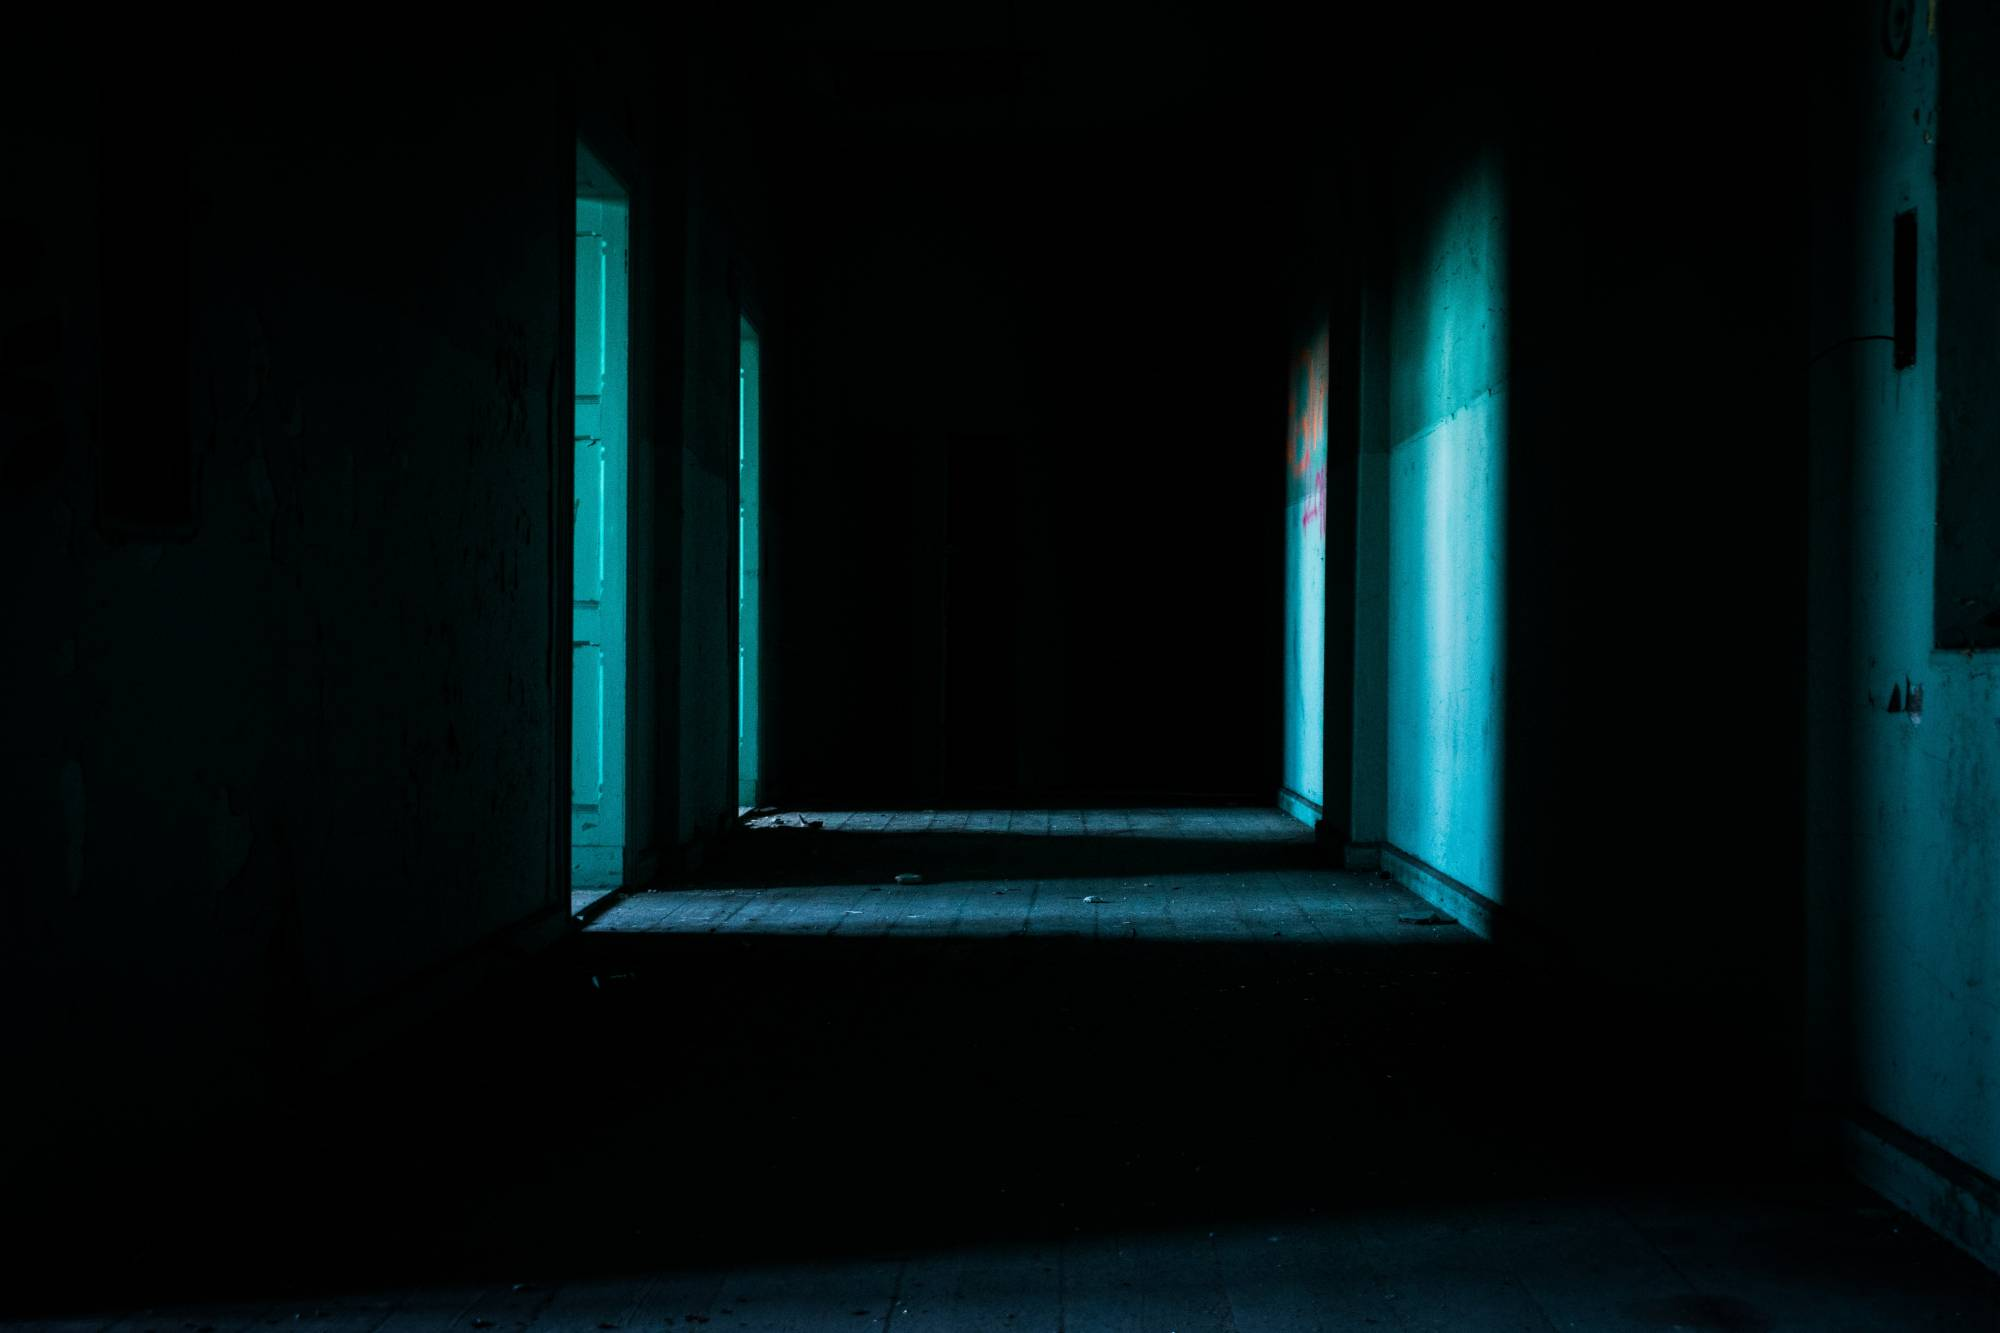 A dark corridor with two open doors on left reflecting blue light on white walls.